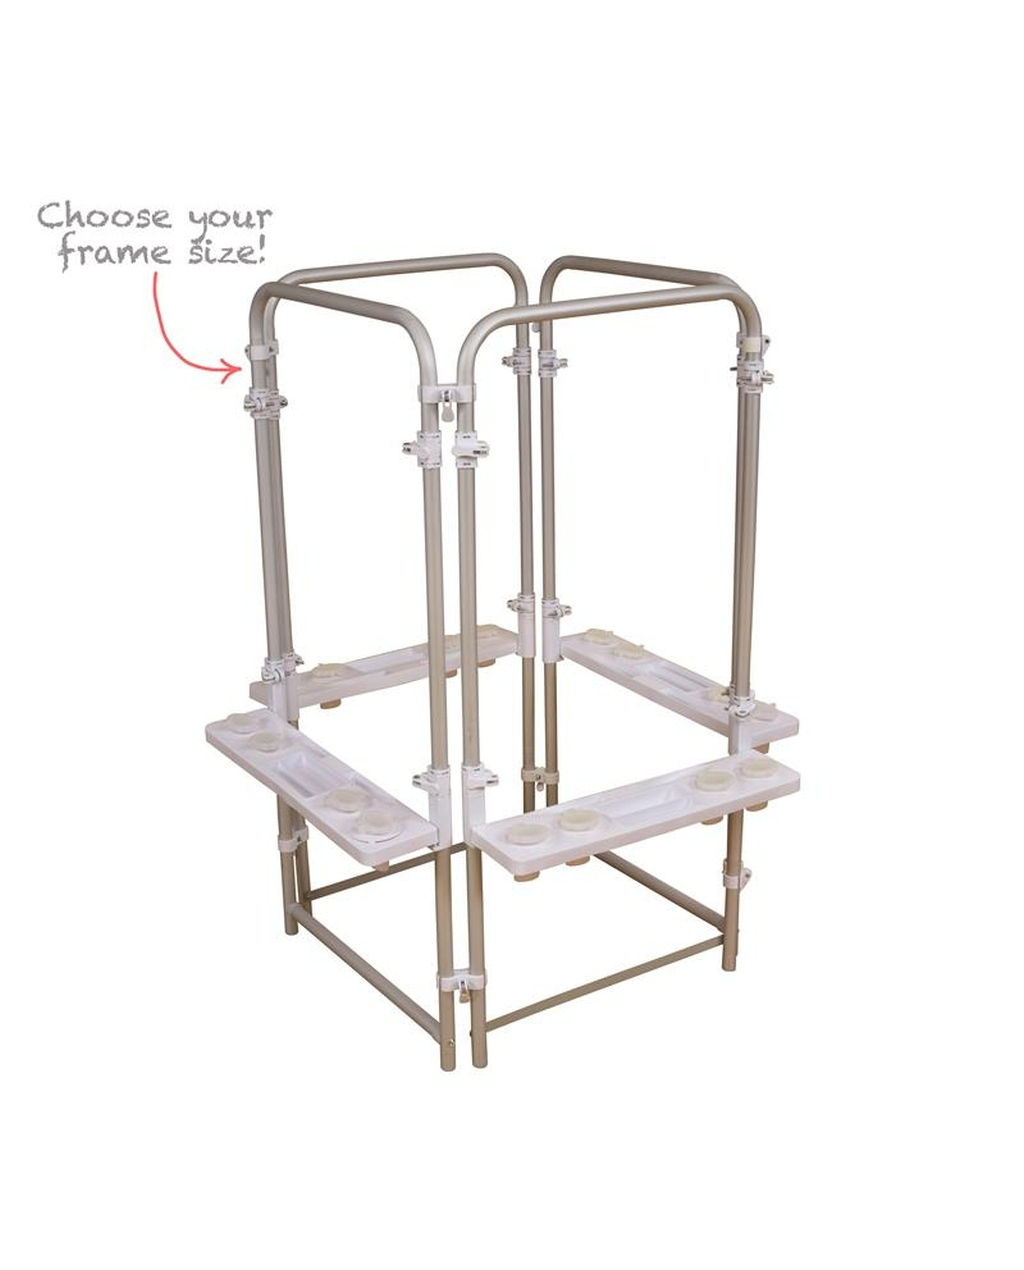 Aluminium Easel - Triple Leg Set - 4 Sided